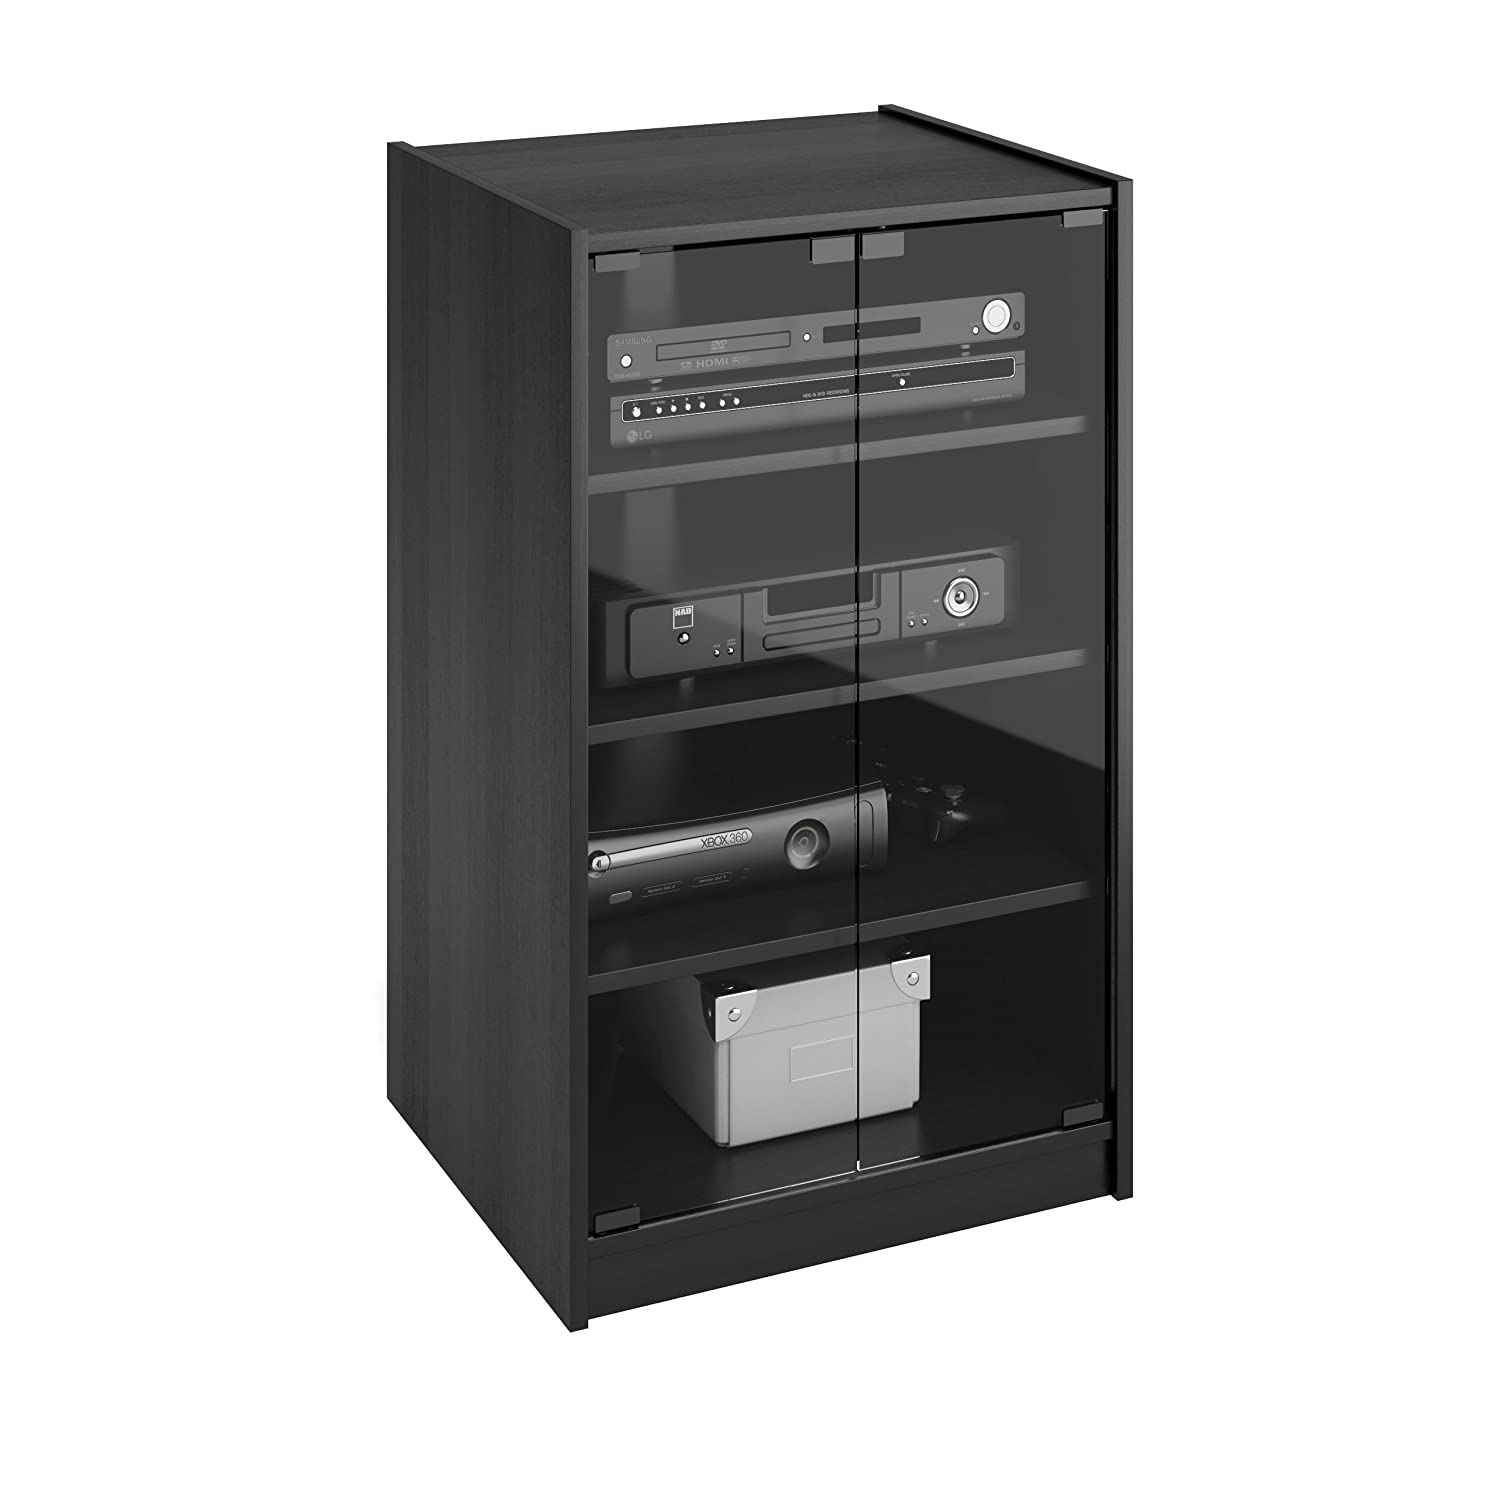 Sonax Cranley Wide Enclosed Component Stand, 21-Inch, Ravenwood Black